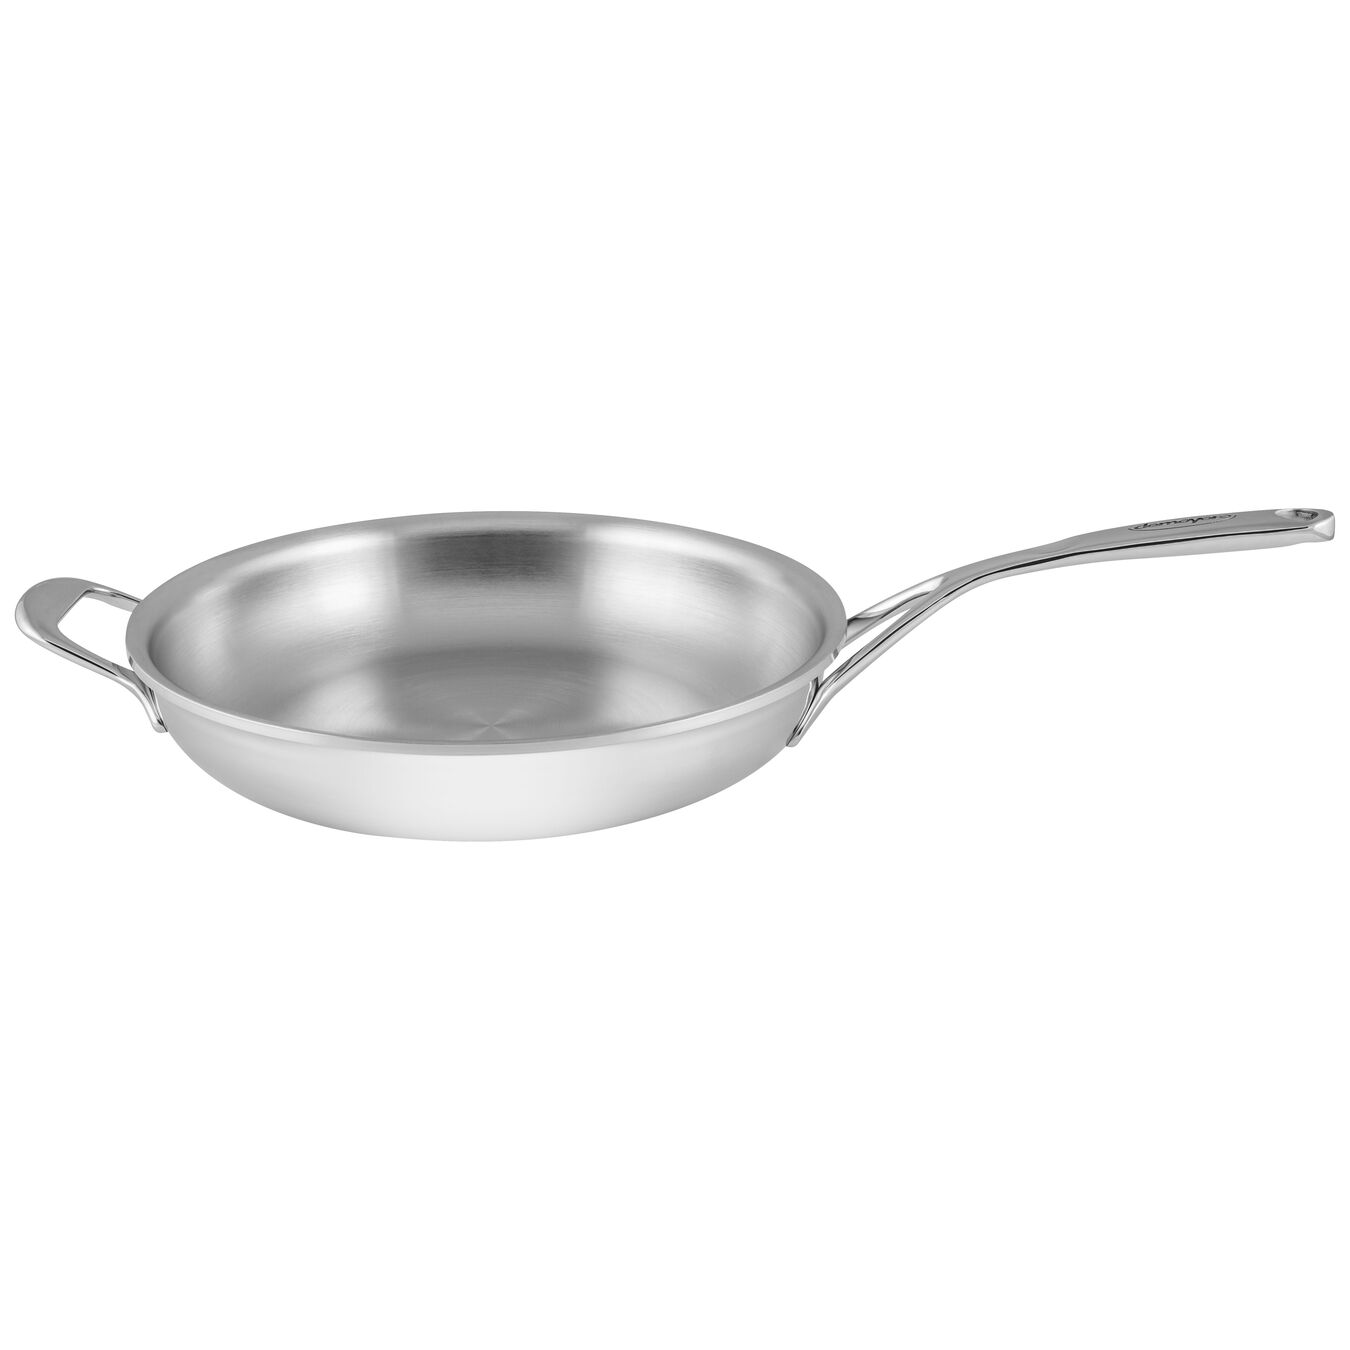 11-inch, 18/10 Stainless Steel, Frying pan,,large 1